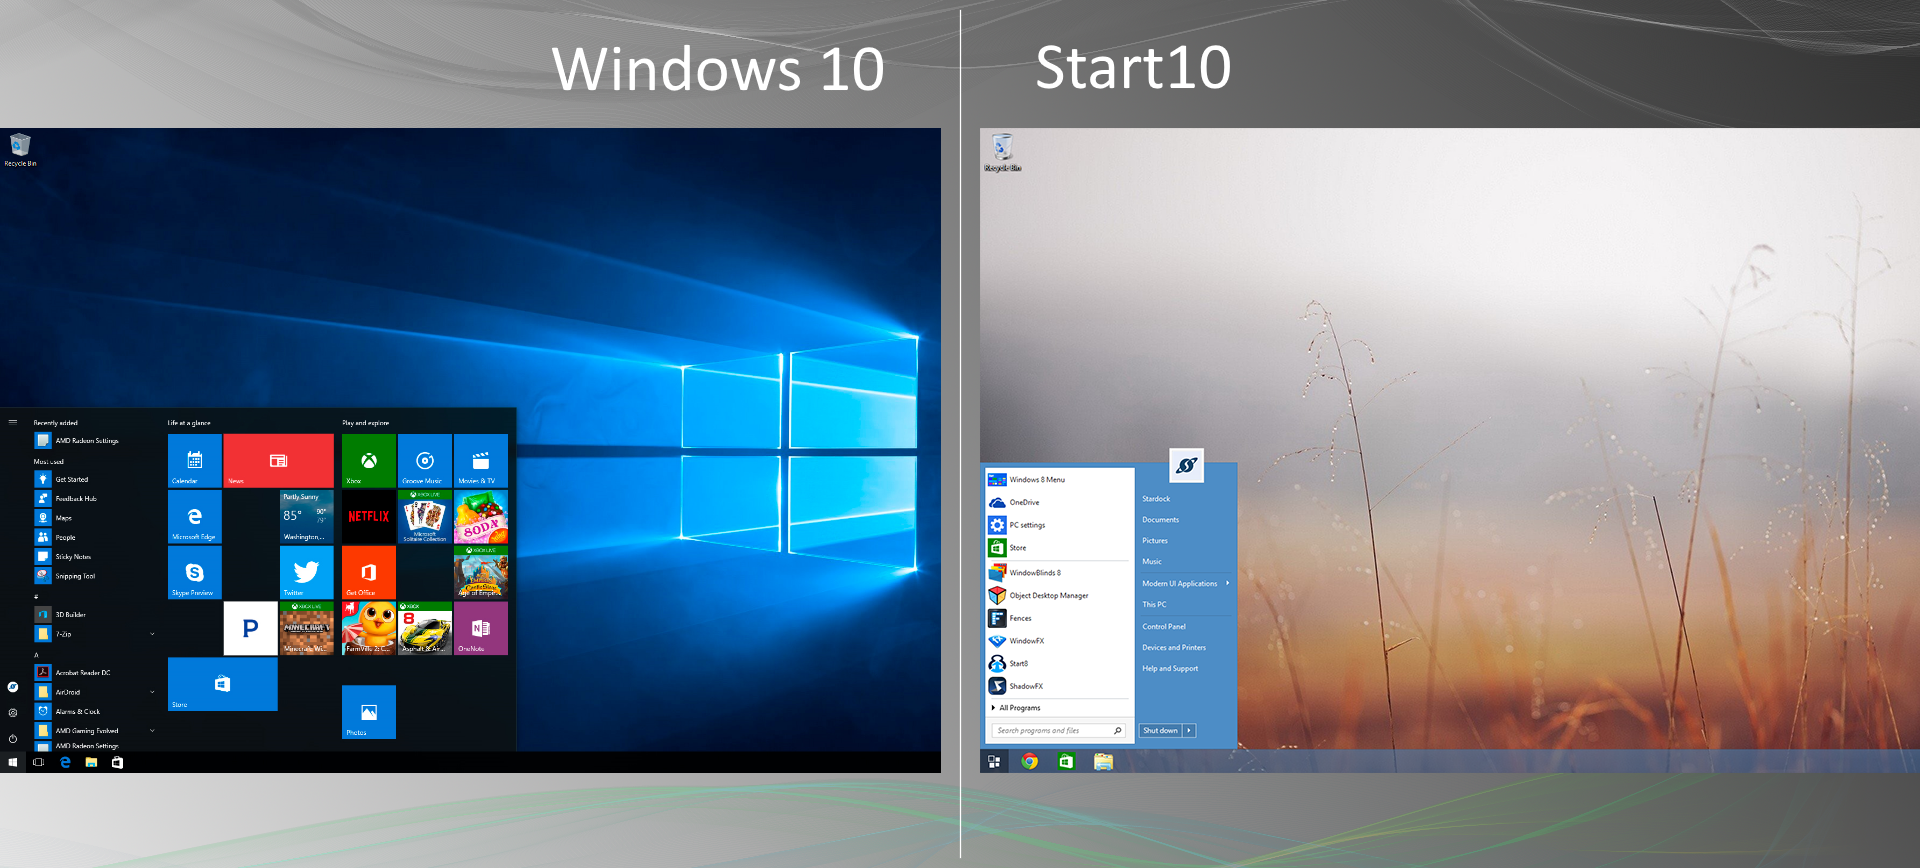 Start10 : Software from Stardock